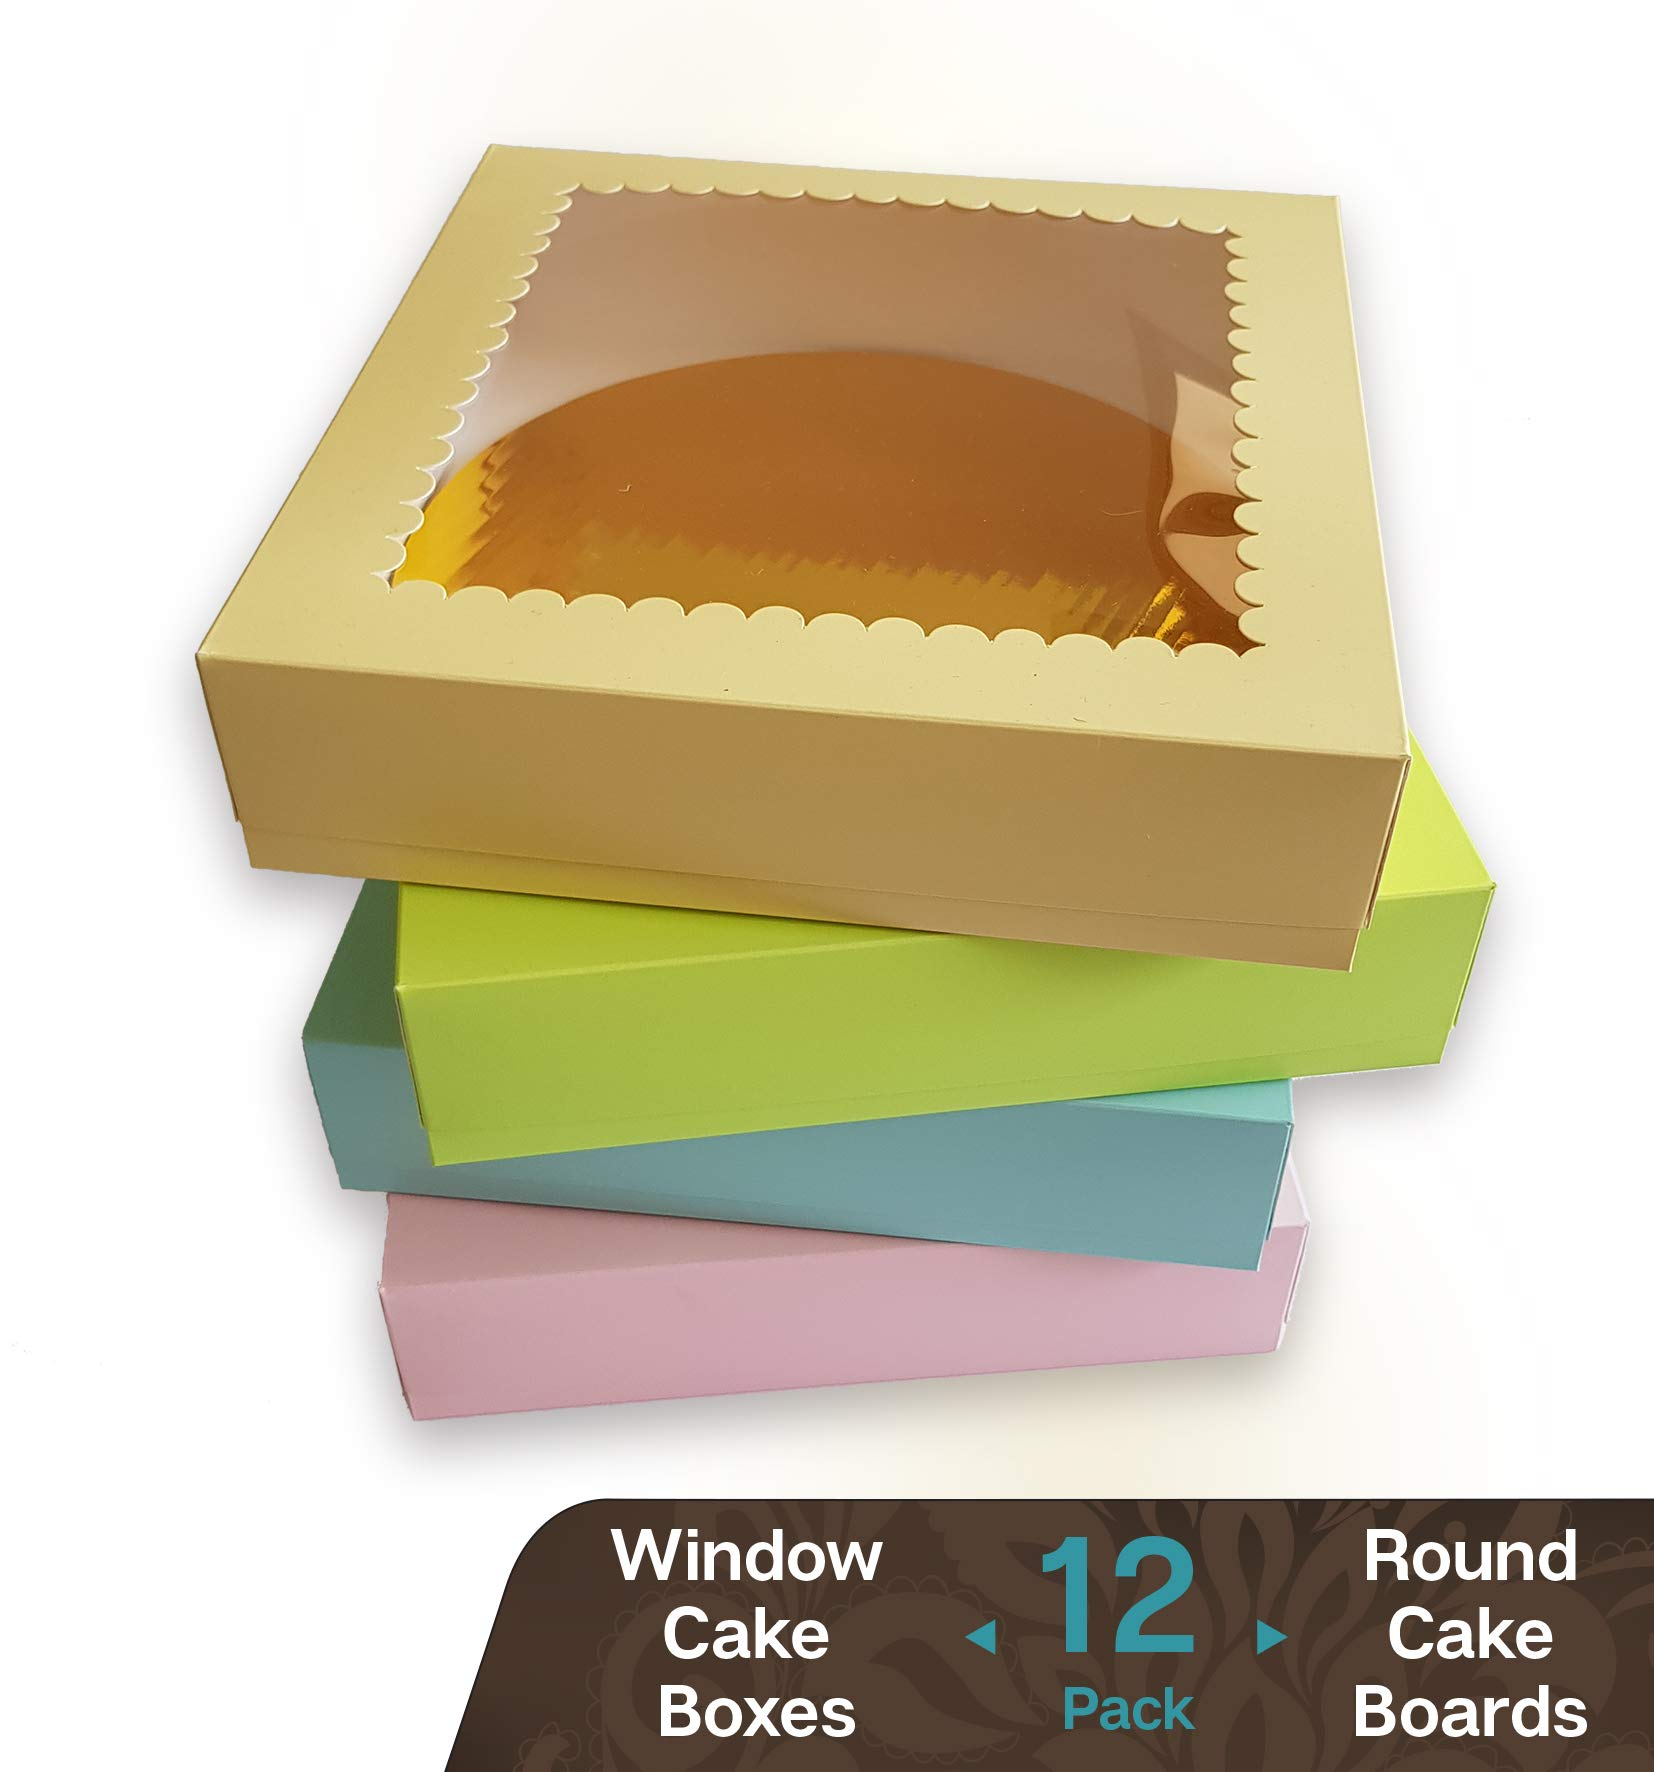 Cookeezz Couture - Cake Boxes Heavy Duty Window 9x9x2.5 inch Donuts Boxes Great for Bakery, Pies, Cakes, Cupcake - 12 Pack Cake Boxes at Assorted 4 Pastel Colors. (Cake Box 9x9x2.5 inch)